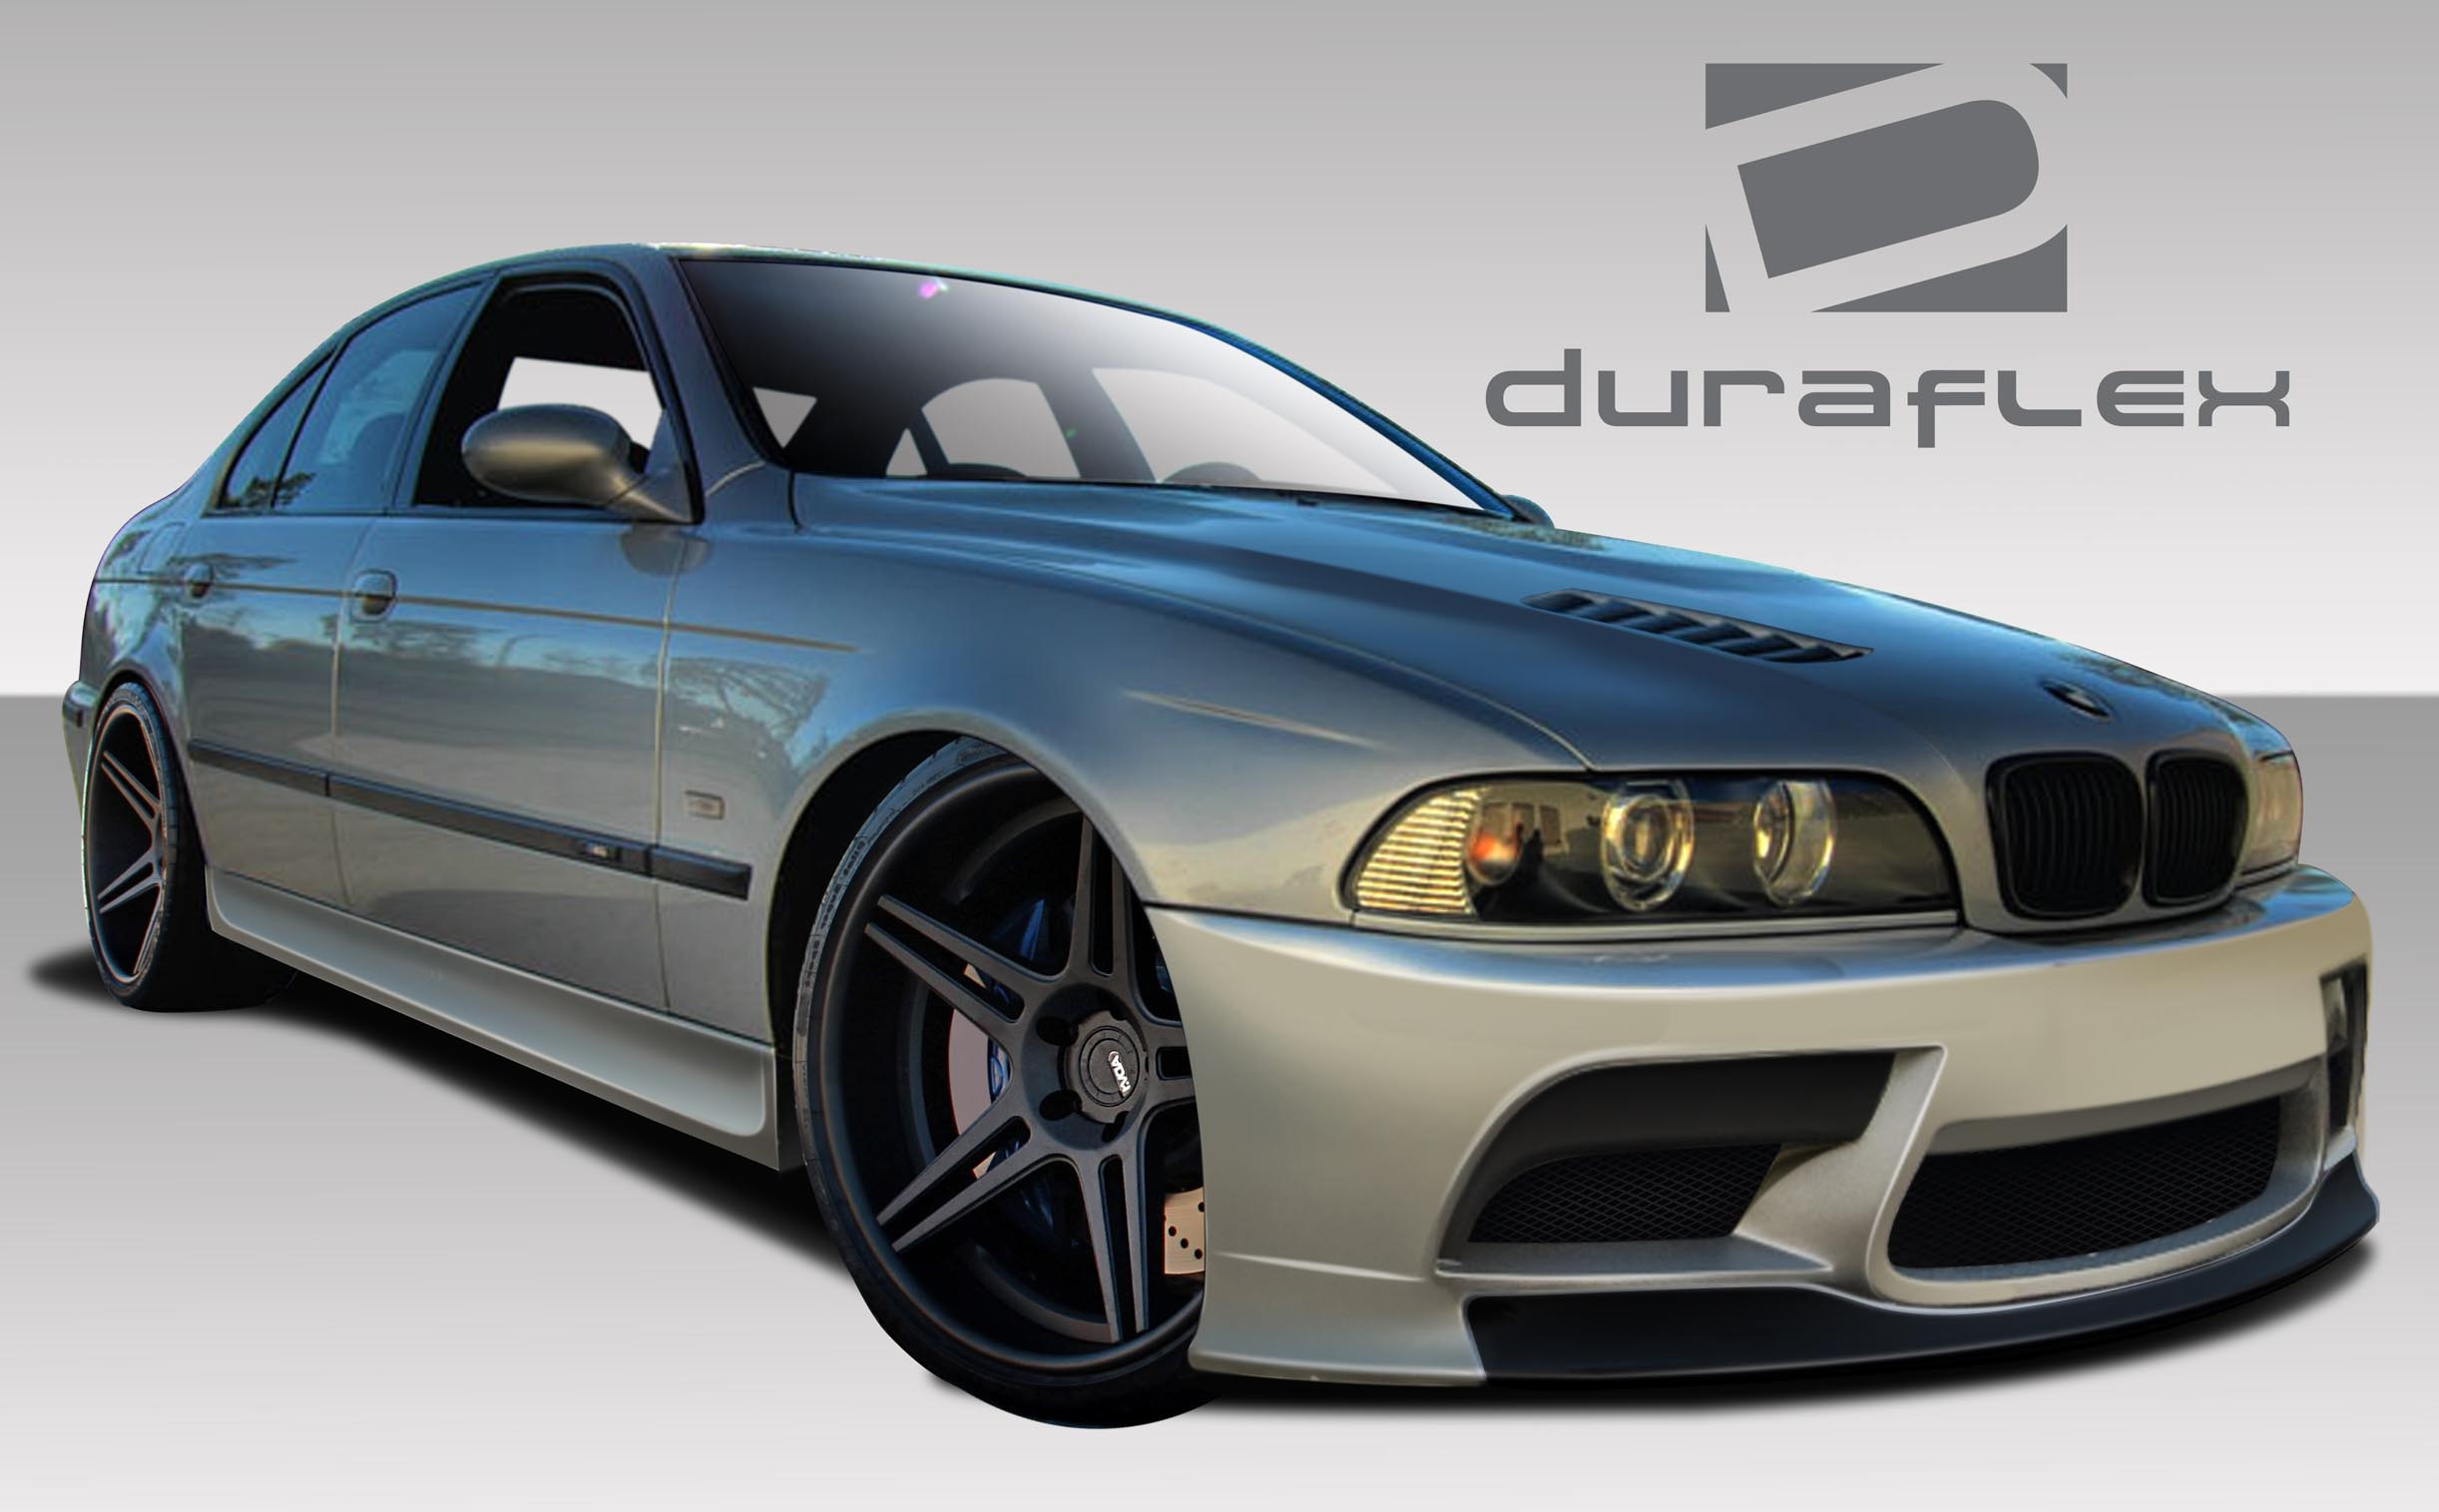 welcome to extreme dimensions item group 1997 2003 bmw 5 series e39 duraflex gt s body kit. Black Bedroom Furniture Sets. Home Design Ideas